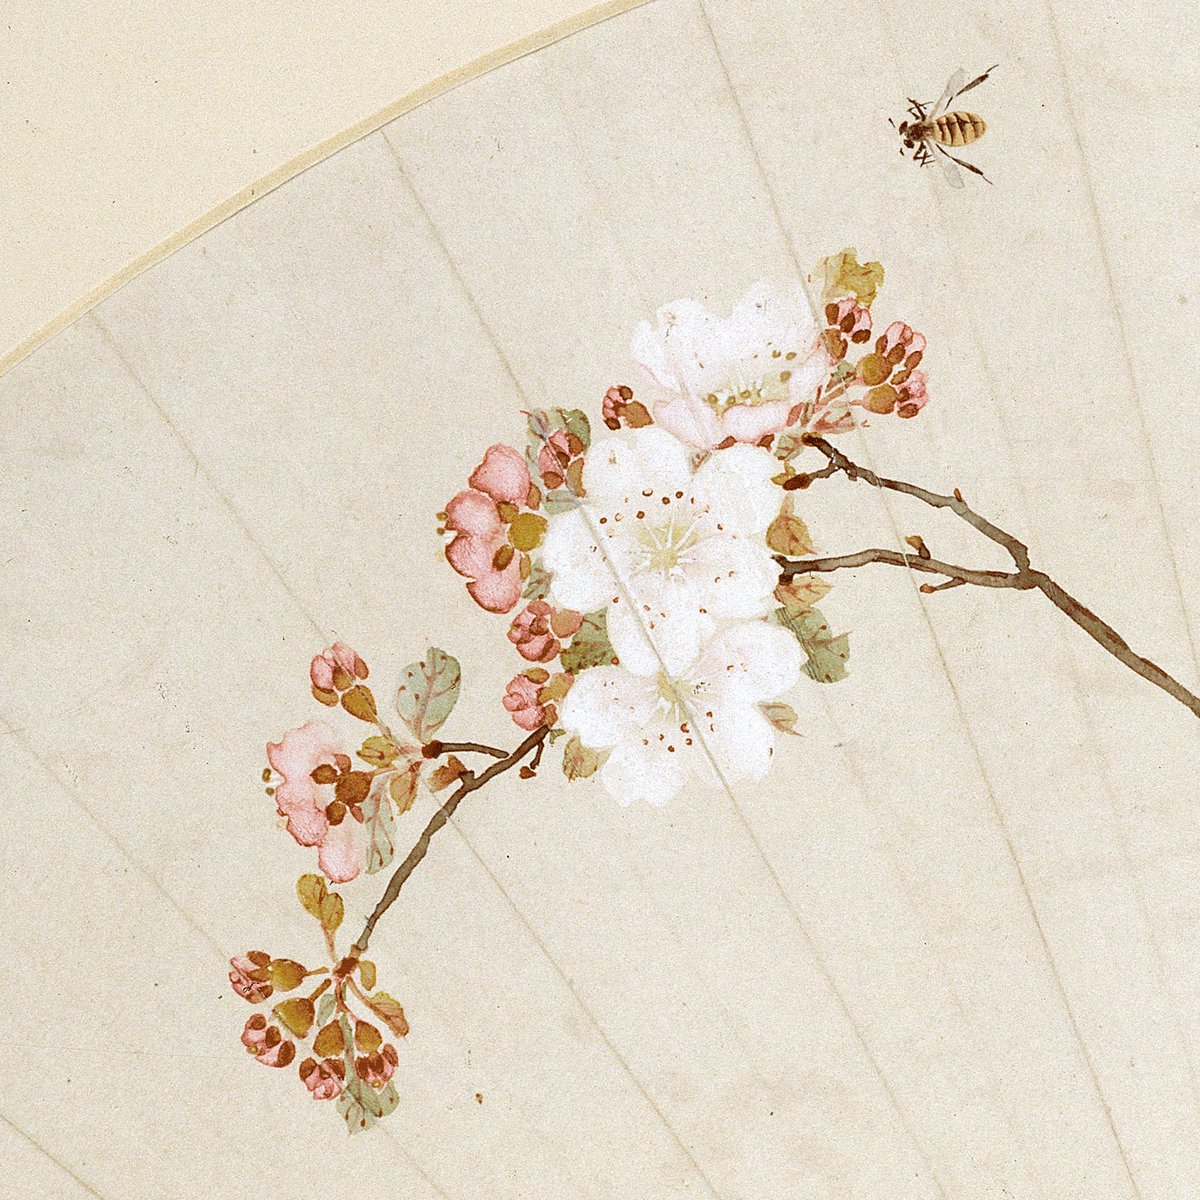 Today is the first #WorldBeeDay! 🐝 This little bee is buzzing around a cherry blossom on a 19th-century Chinese fan by artist Chen Fen